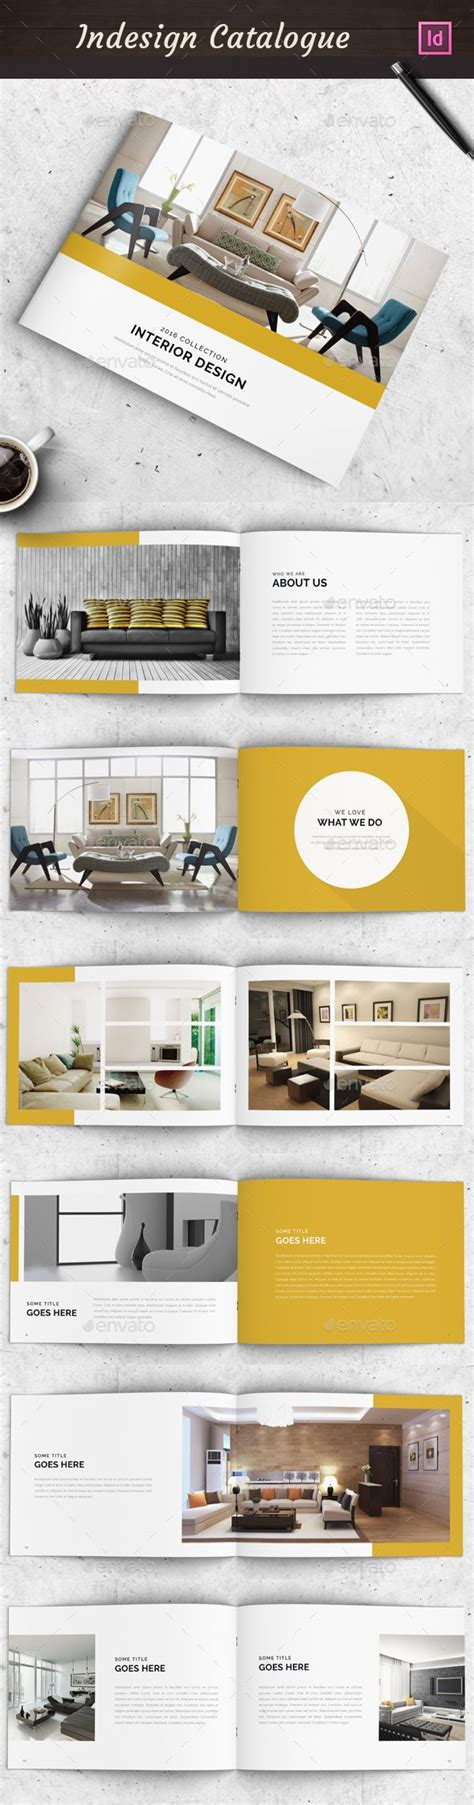 templates de portefolios best 25 design portfolio layout ideas on pinterest